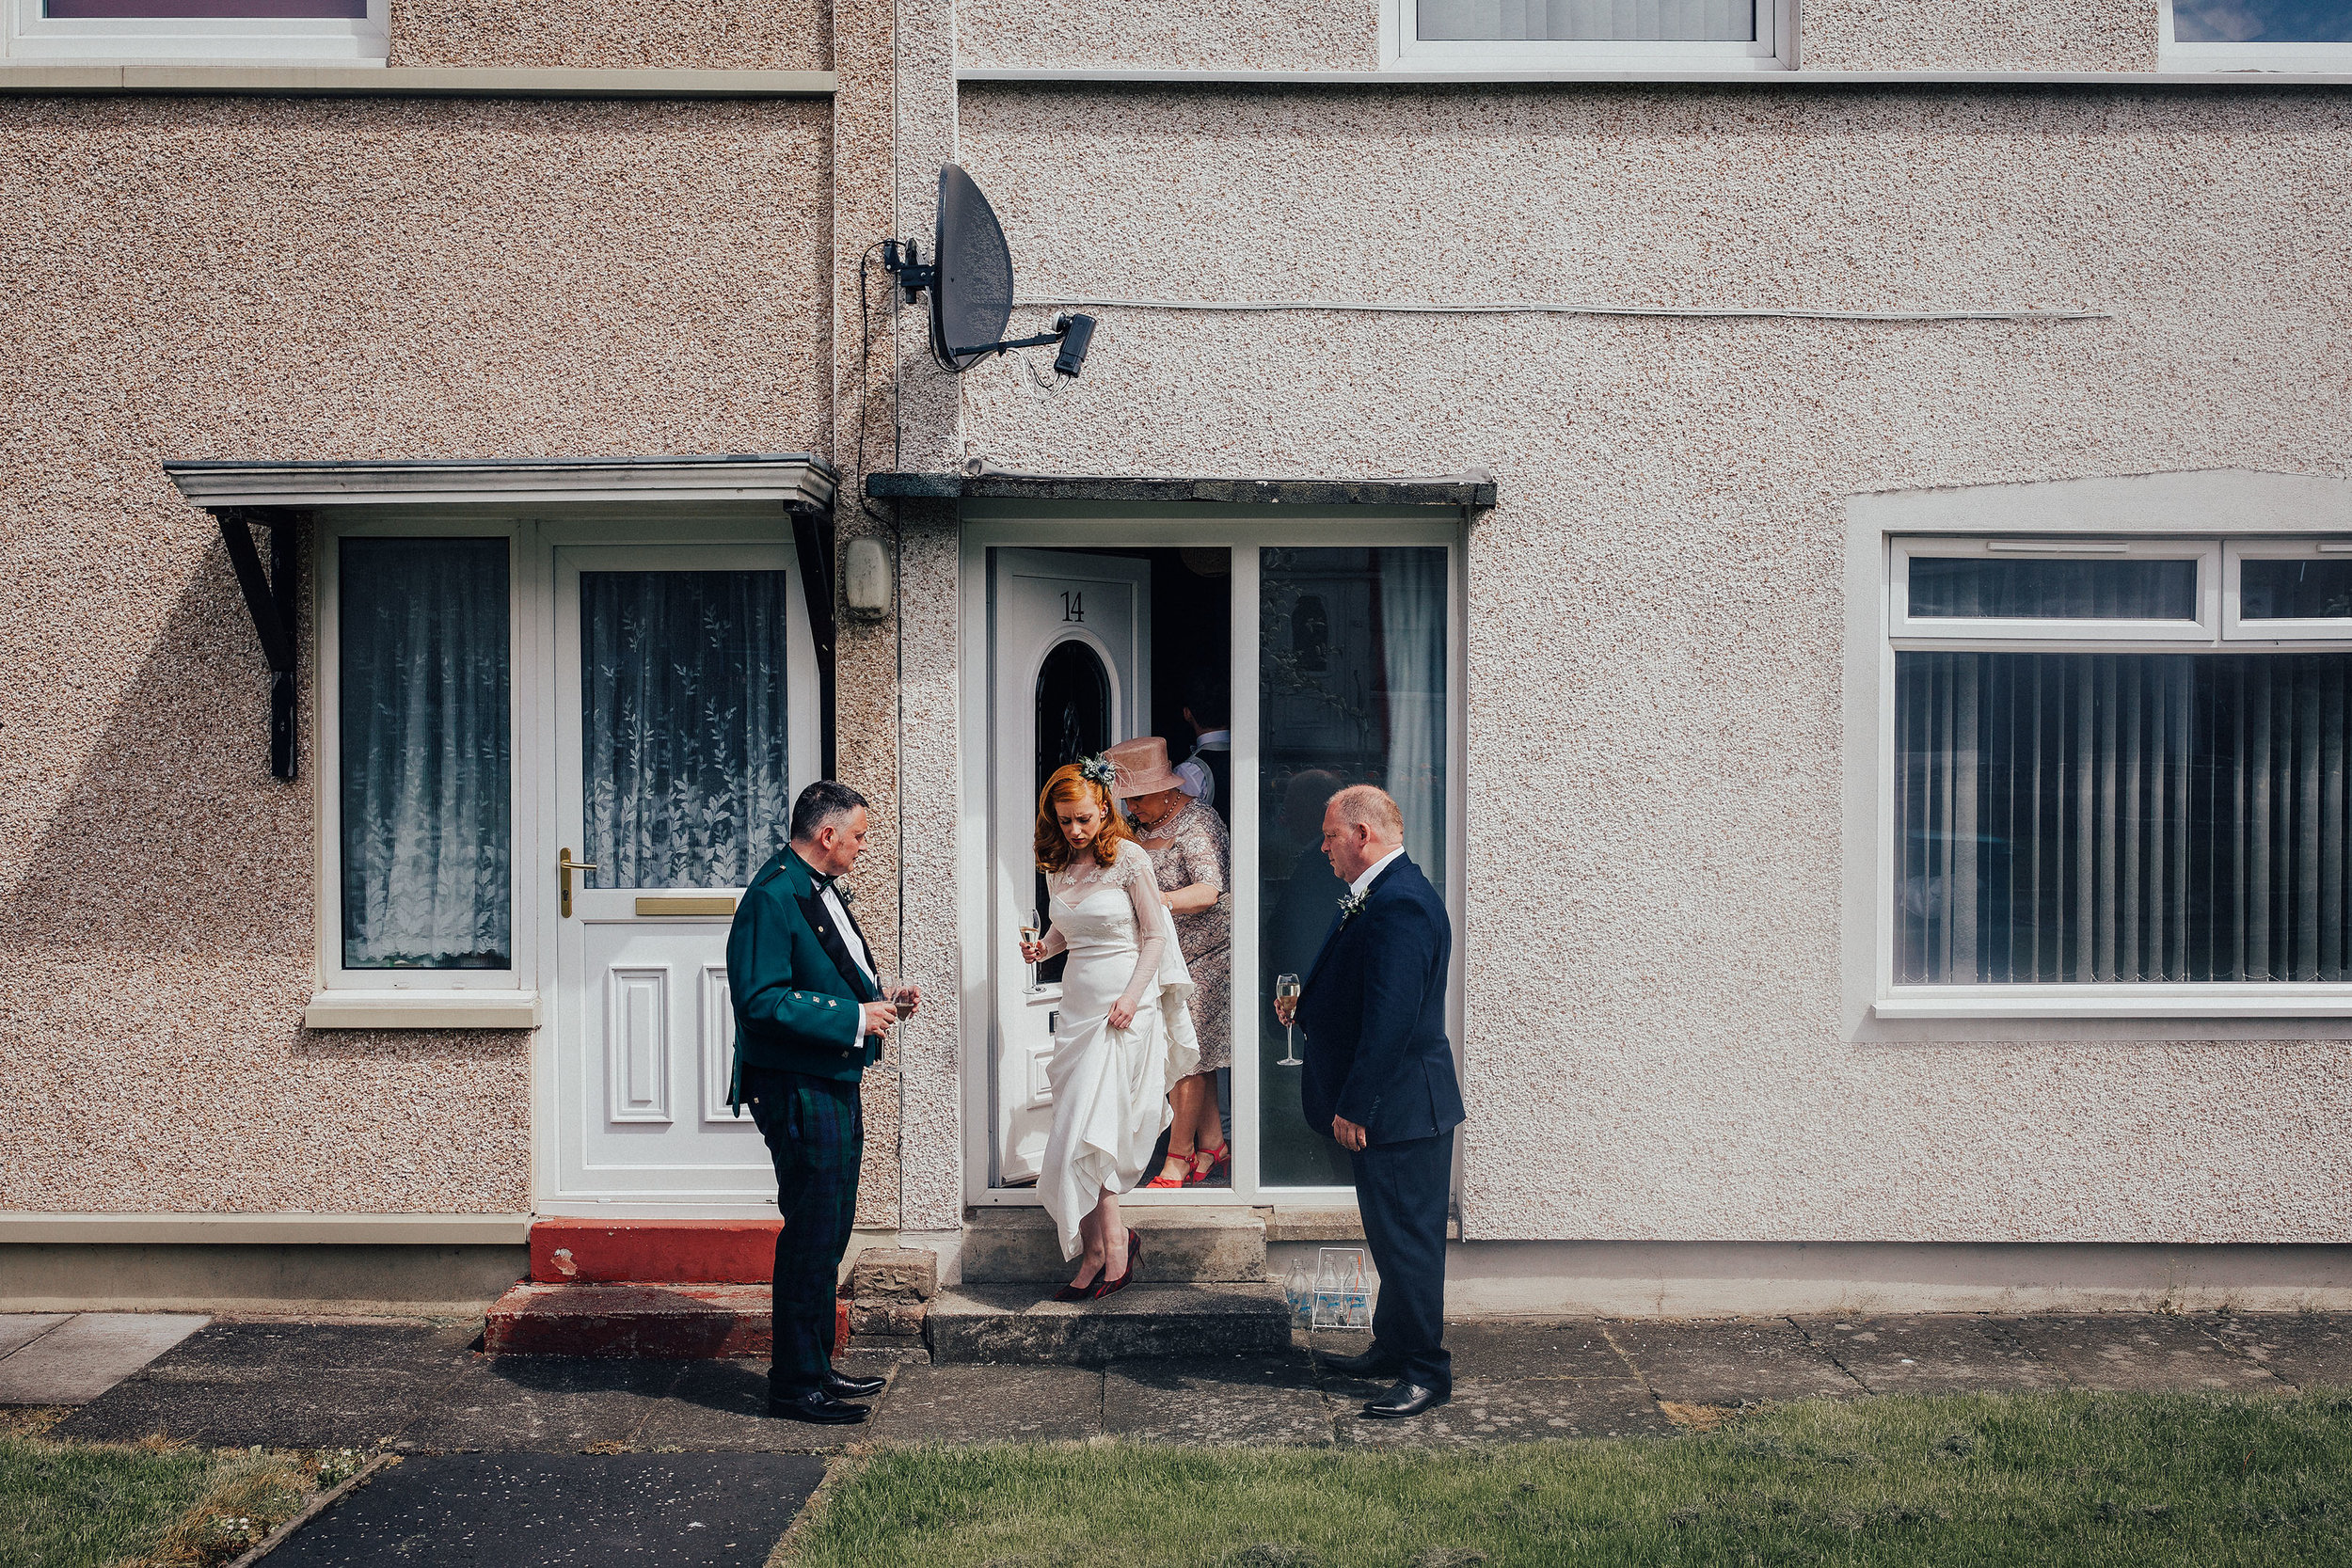 SAME_SEX_WEDDING_PHOTOGRAPHER_SLOANS_GLASGOW_PJ_PHILLIPS_PHOTOGRAPHY_20.jpg